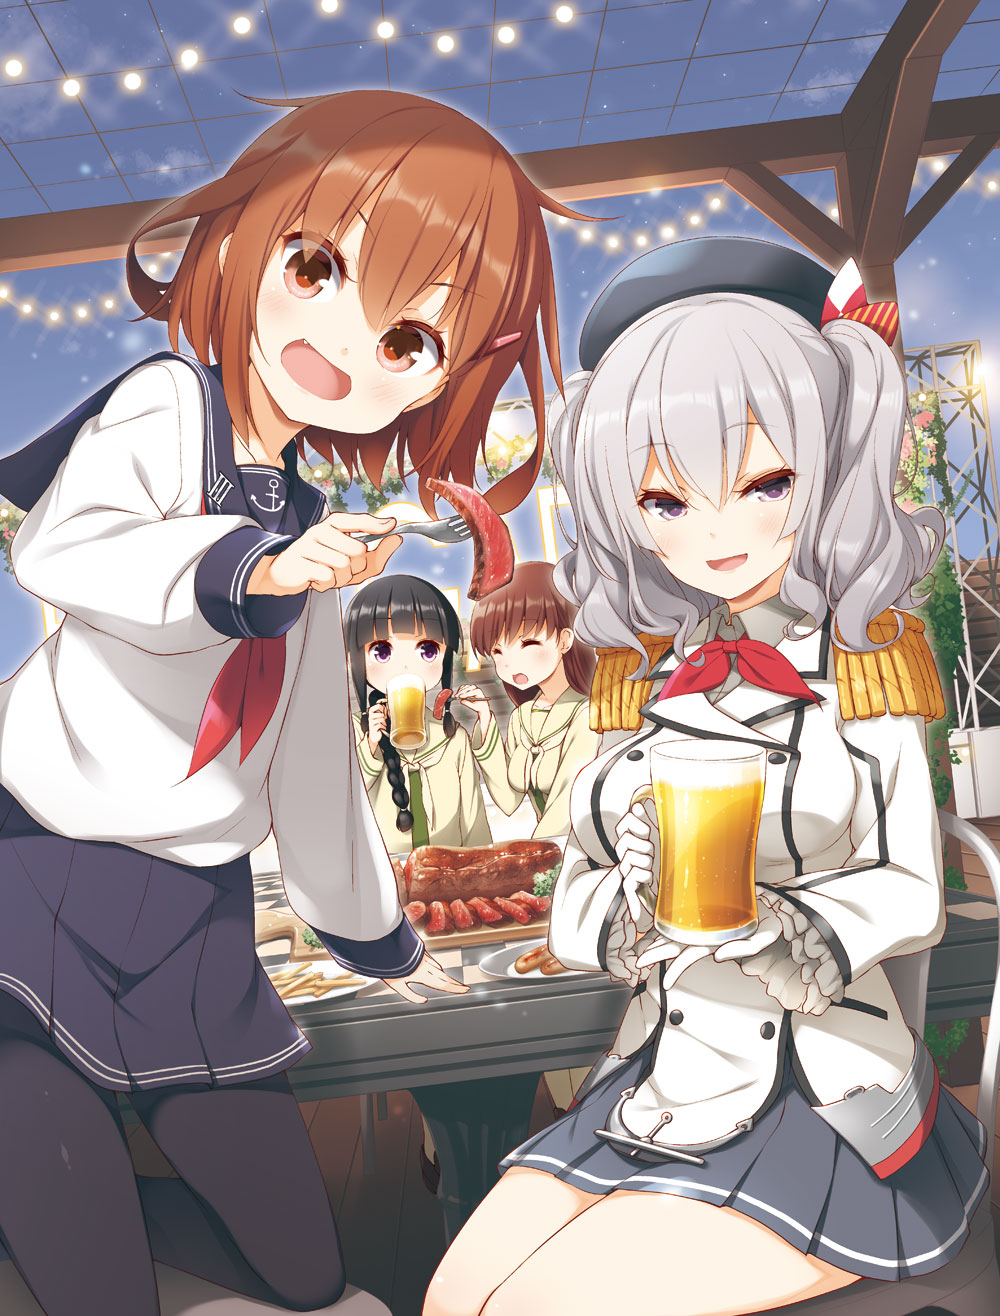 4girls alcohol anchor_symbol bangs beer beer_mug beret black_hair black_headwear black_legwear blue_eyes blunt_bangs blush braid breasts brown_hair buttons closed_eyes commentary_request cup epaulettes eyebrows_visible_through_hair fang feeding food fork french_fries frilled_sleeves frills gloves grey_eyes hair_between_eyes hair_ornament hair_over_shoulder hair_ribbon hairclip hat highres holding holding_cup holding_fork ikazuchi_(kantai_collection) jacket kantai_collection kashima_(kantai_collection) kerchief kitakami_(kantai_collection) large_breasts long_hair long_sleeves looking_at_viewer meat multiple_girls neckerchief ooi_(kantai_collection) open_mouth outdoors pantyhose plate pleated_skirt red_neckwear remodel_(kantai_collection) ribbon school_uniform serafuku short_hair sidelocks silver_hair single_braid sitting skirt sky smile star steak table thighs tress_ribbon twintails uniform violet_eyes wavy_hair white_gloves white_jacket yume_no_owari